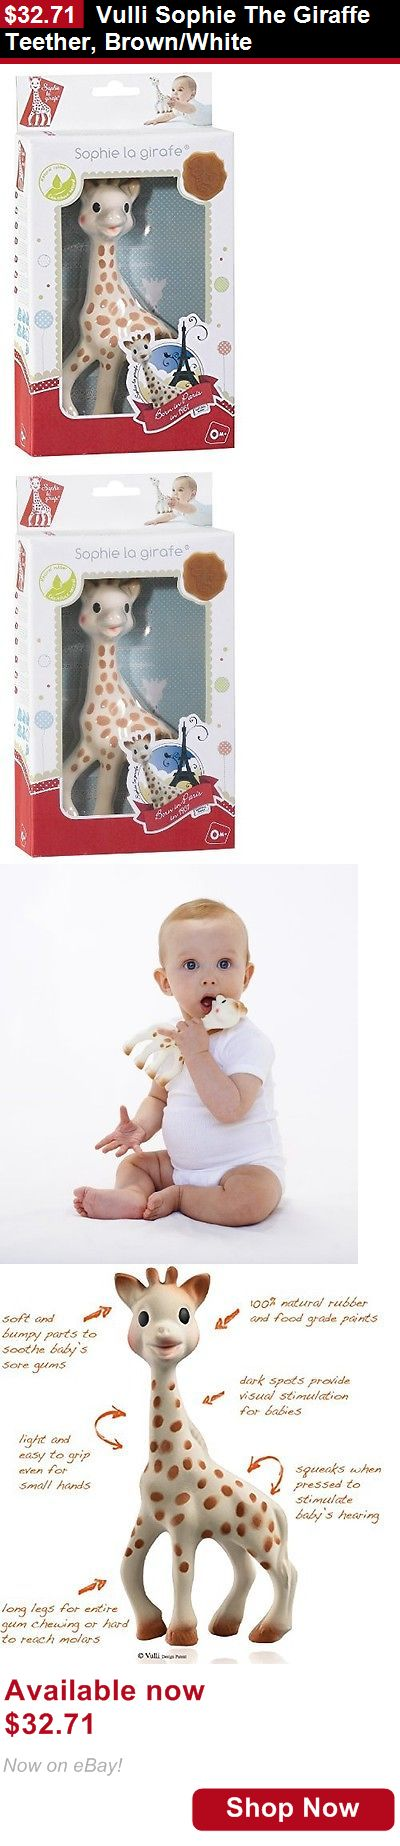 Teethers: Vulli Sophie The Giraffe Teether, Brown/White BUY IT NOW ONLY: $32.71